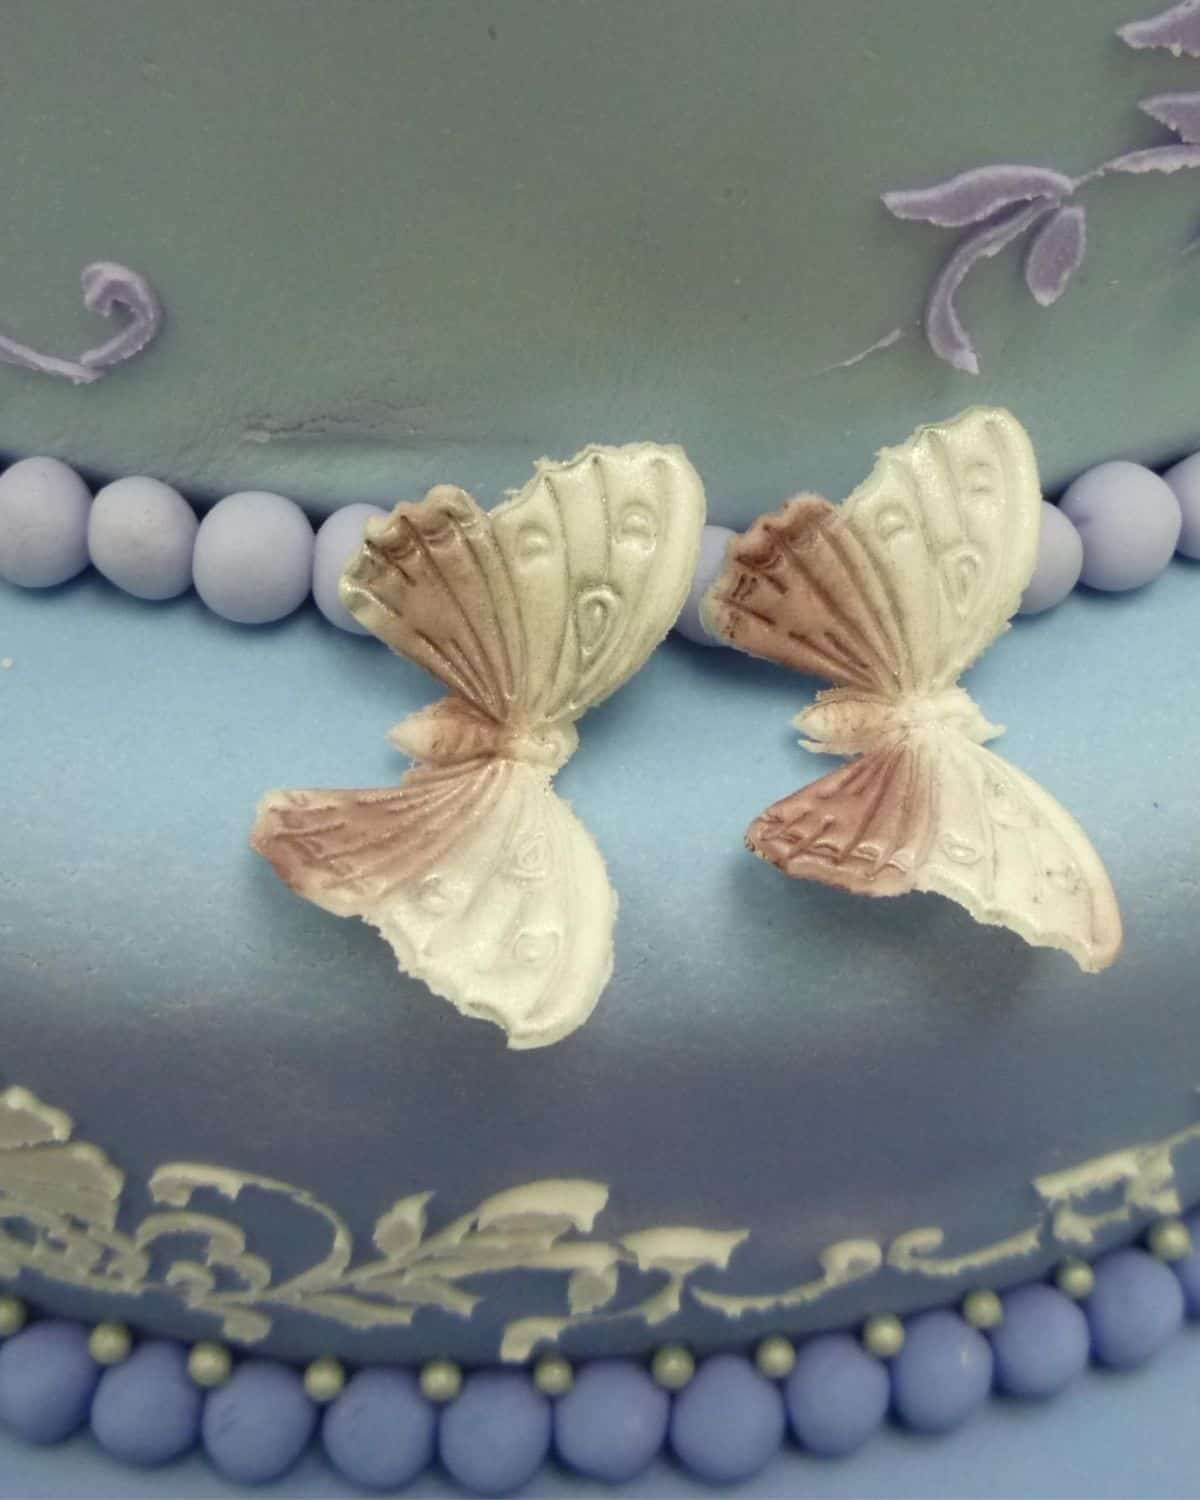 2 gum paste butterflies on a blue cake